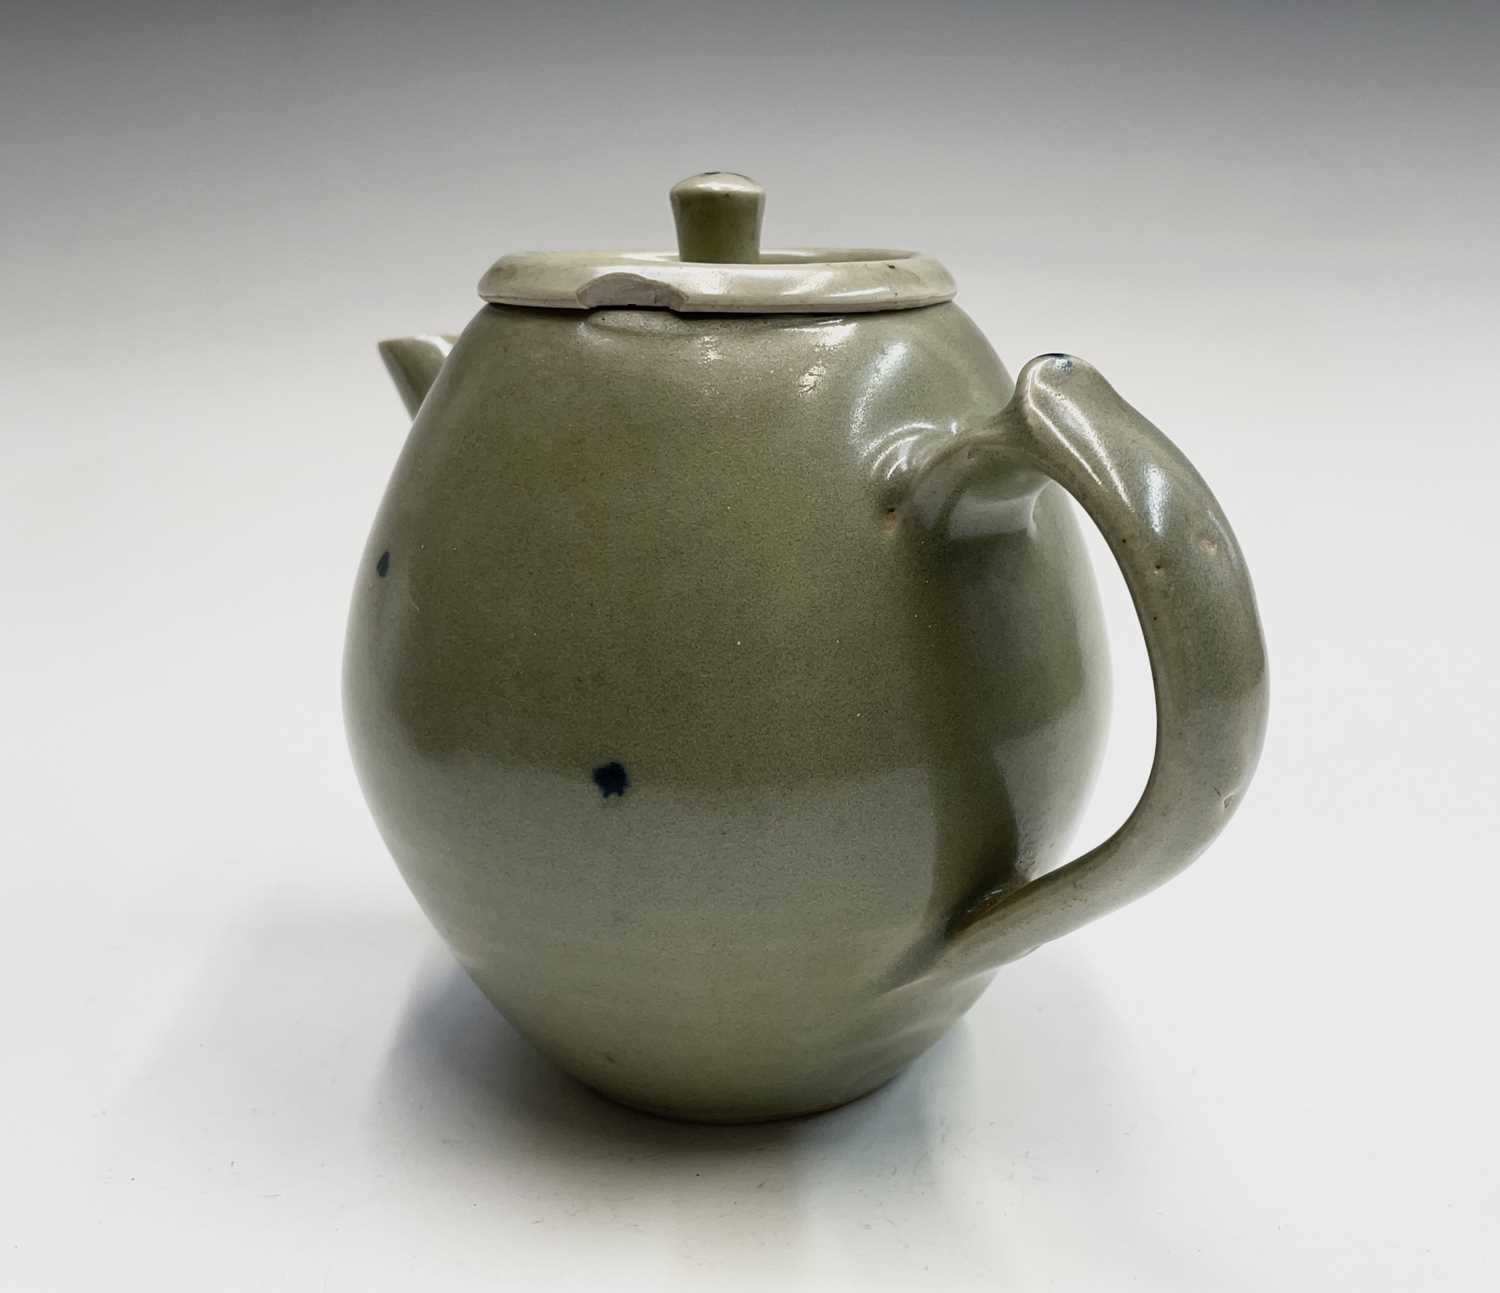 A Leach Pottery, St Ives, celadon glazed teapot, height 14cm, with impressed Leach seal and initials - Image 7 of 11